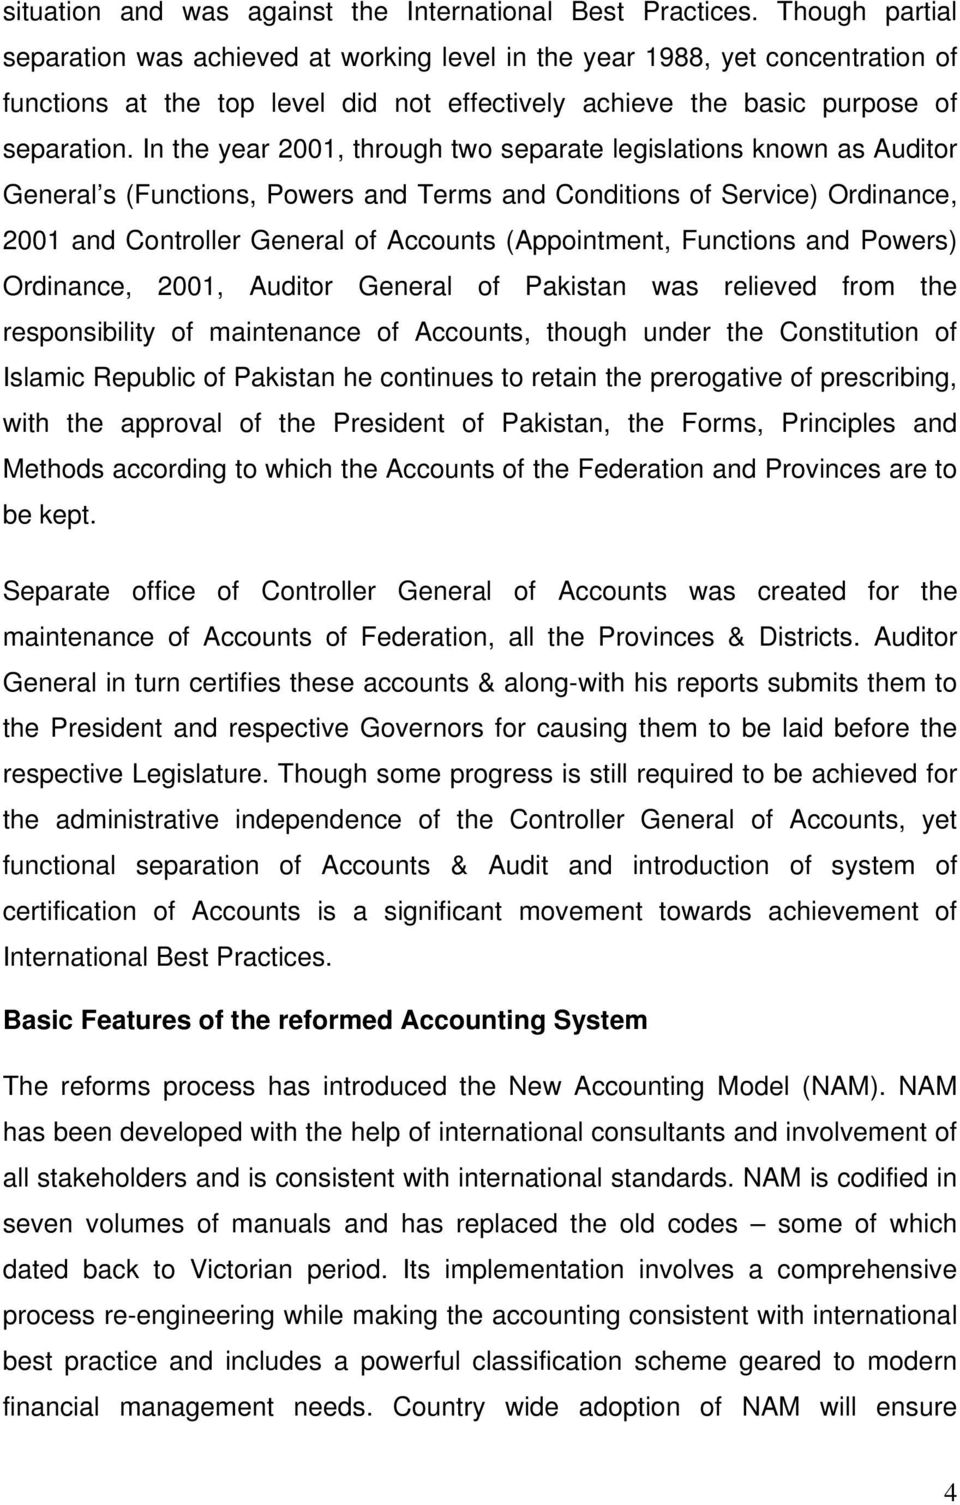 In the year 2001, through two separate legislations known as Auditor General s (Functions, Powers and Terms and Conditions of Service) Ordinance, 2001 and Controller General of Accounts (Appointment,